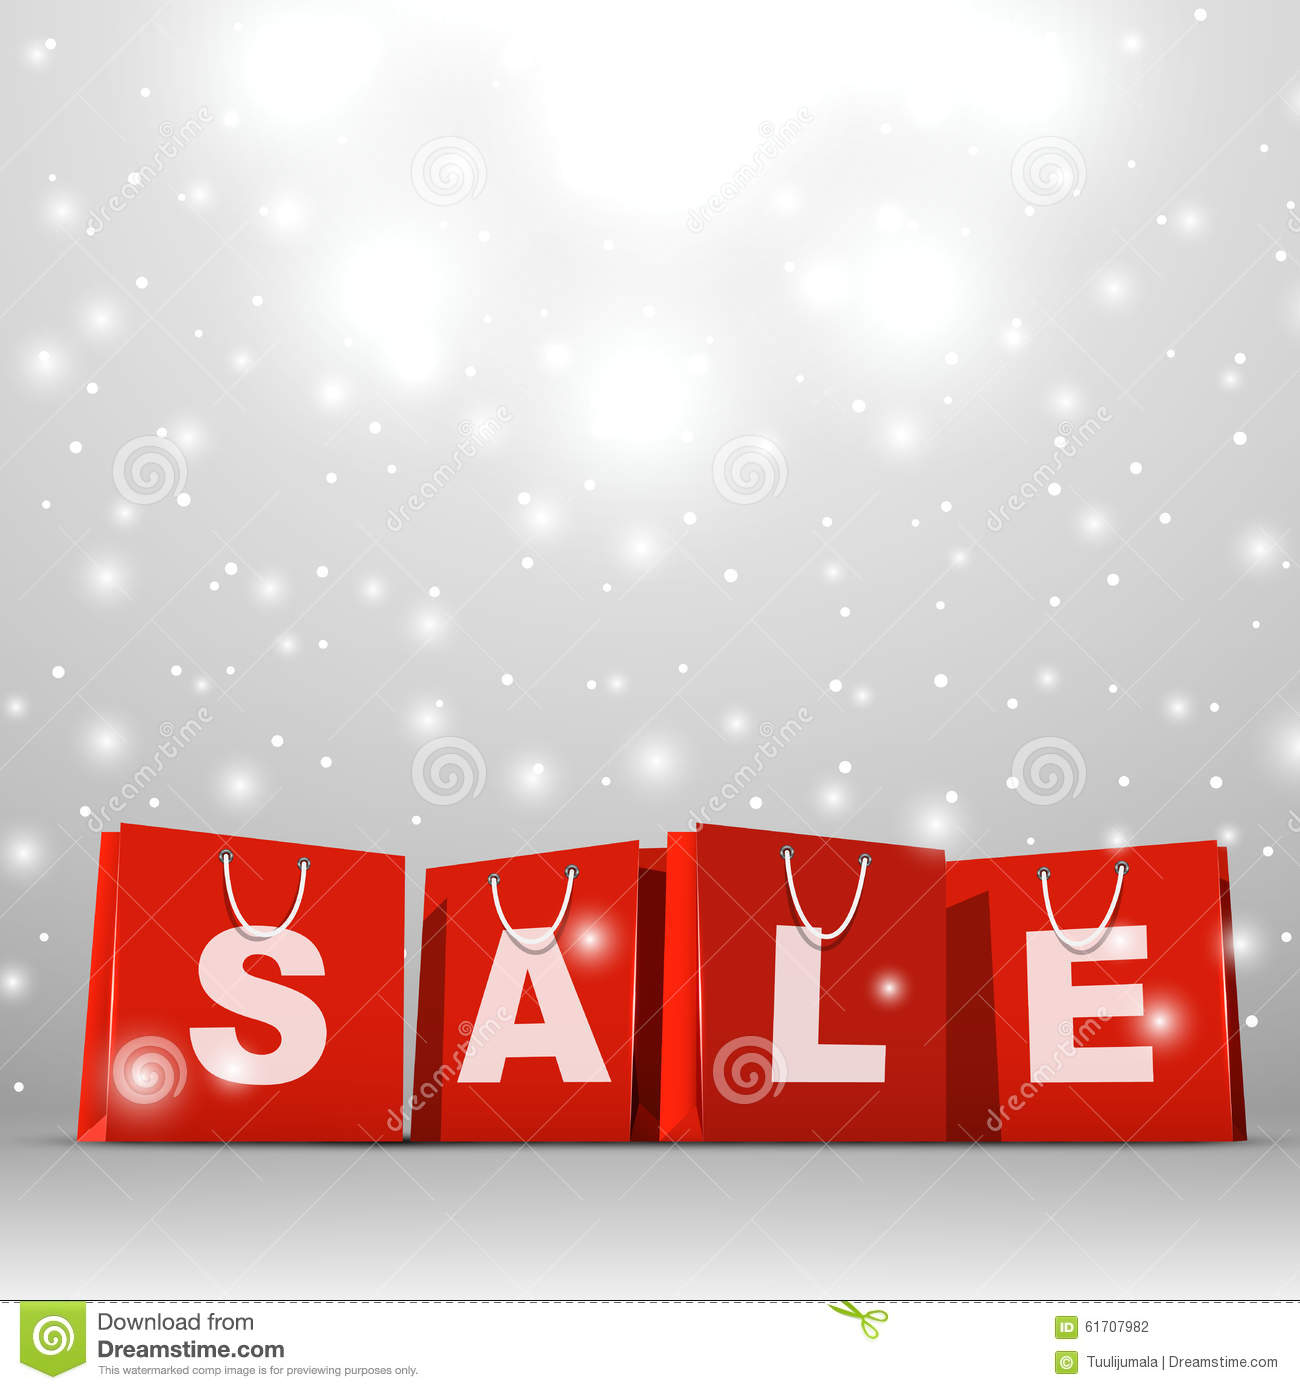 Christmas sale template stock photo. Image of bags, group   61707982